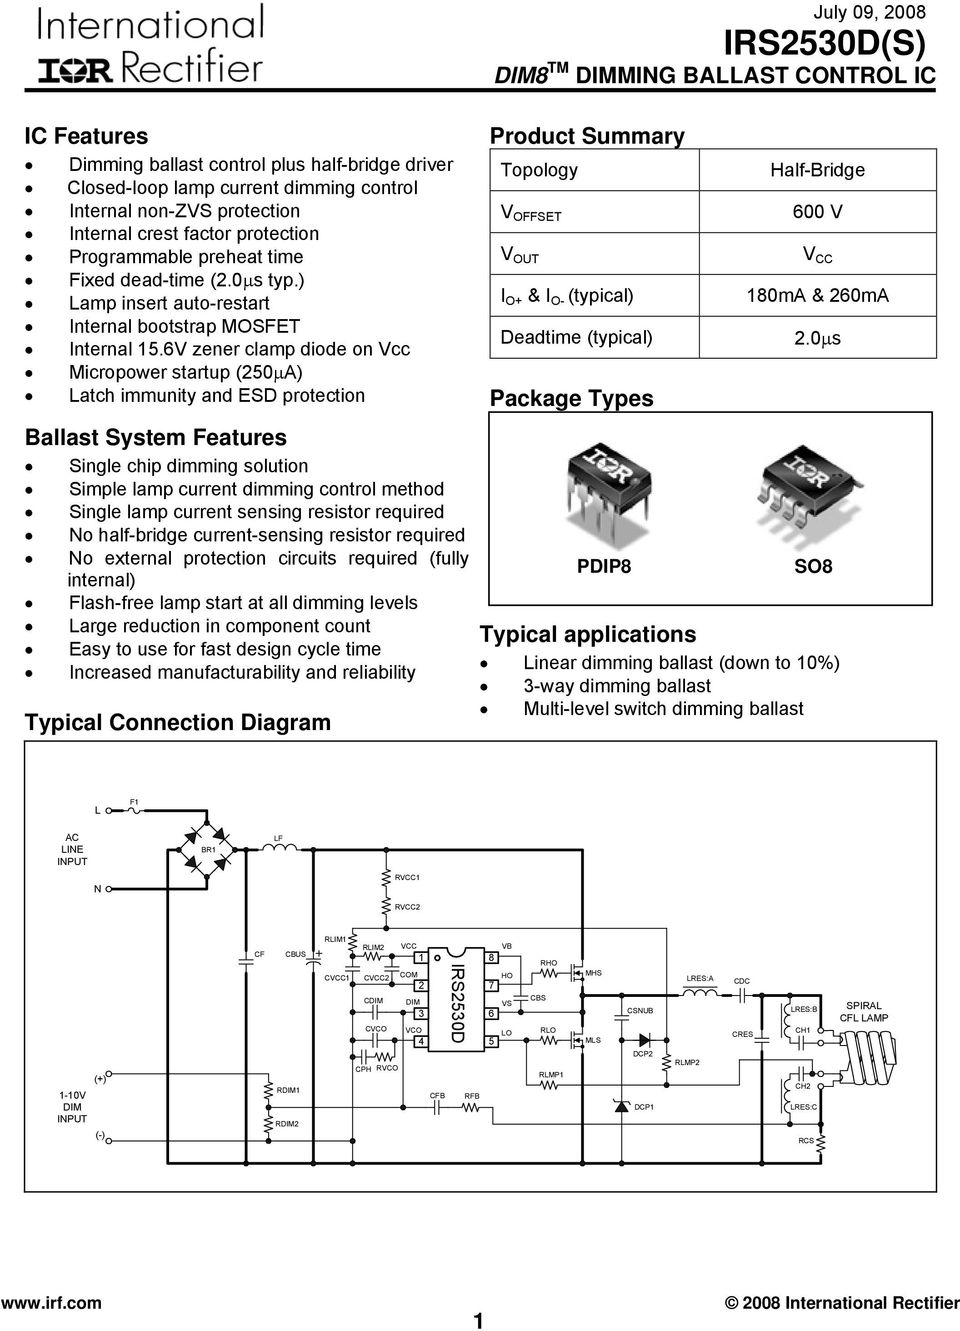 Product Summary Ic Features Package Types Ballast System Lamp 1 Wiring Diagram Get Free Image About 6v Zener Clamp Diode On Vcc Micropower Startup 250a Latch Immunity And Esd Protection